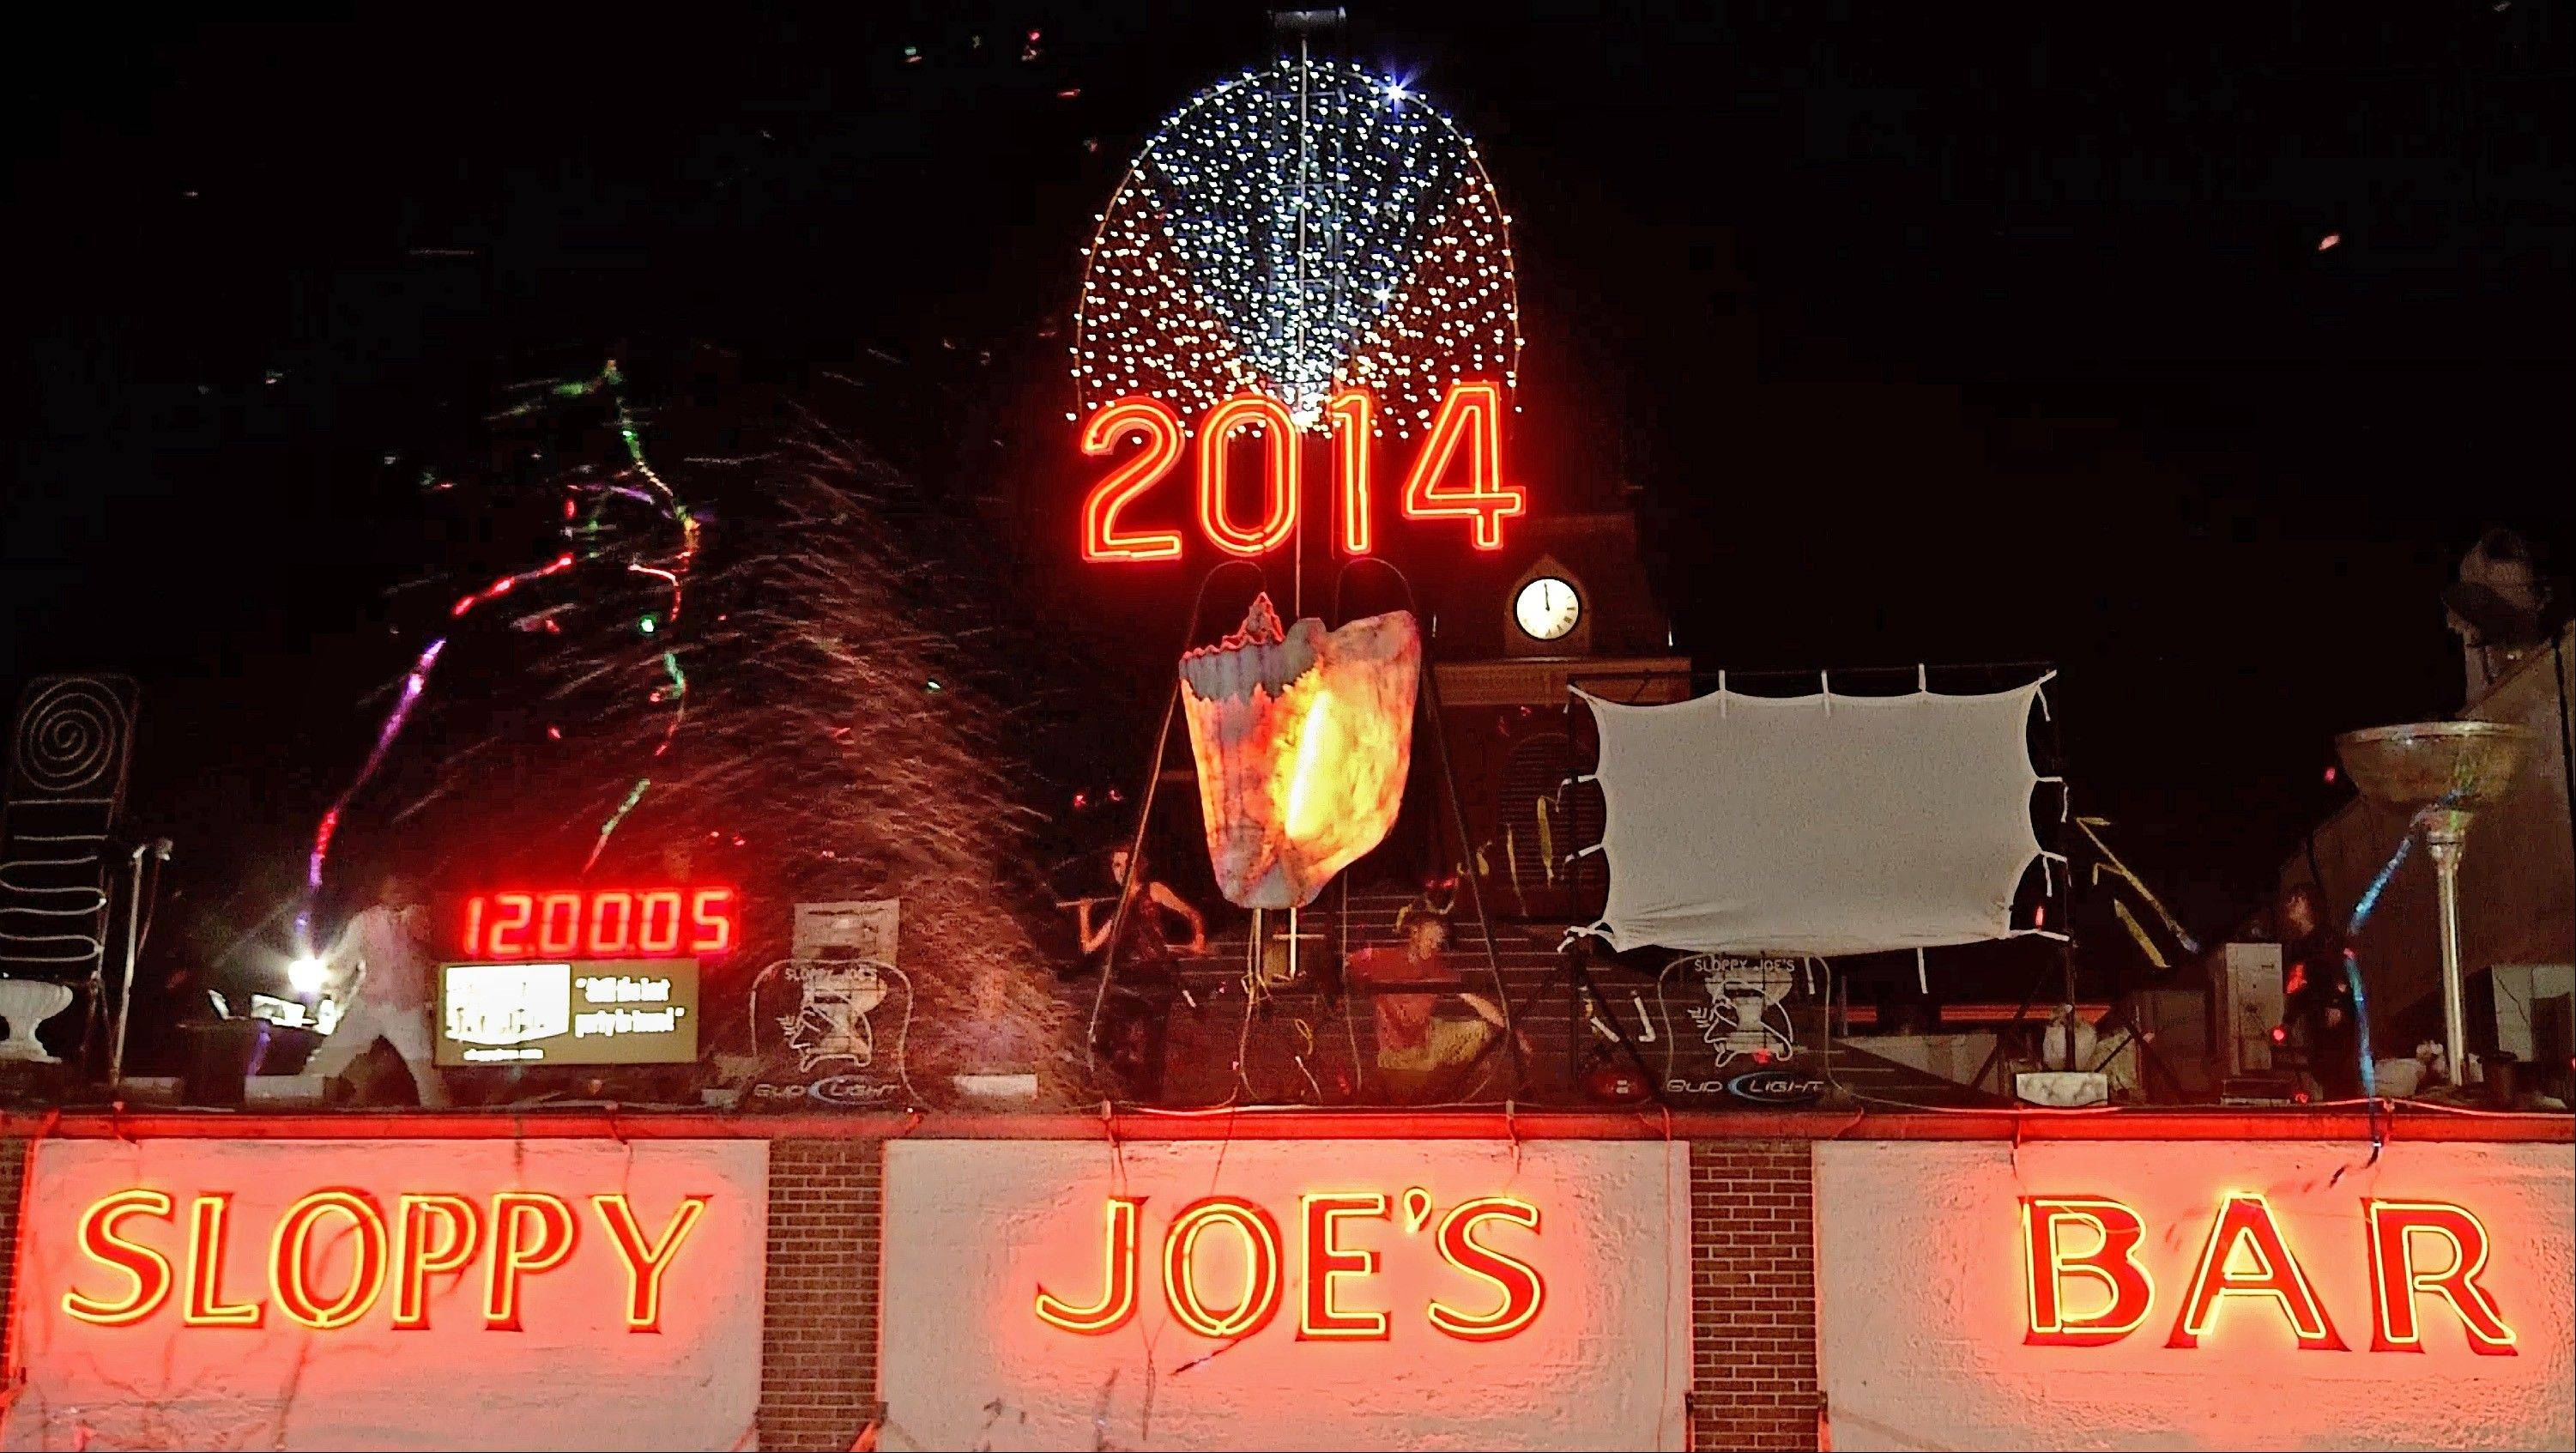 In this photo provided by the Florida Keys News Bureau, a large reproduction of a conch shell is lowered to the roof of Sloppy Joe's Bar in Key West, Fla., early Wednesday, Jan. 1, 2014. The subtropical island city staged four different New Year's Eve drops.